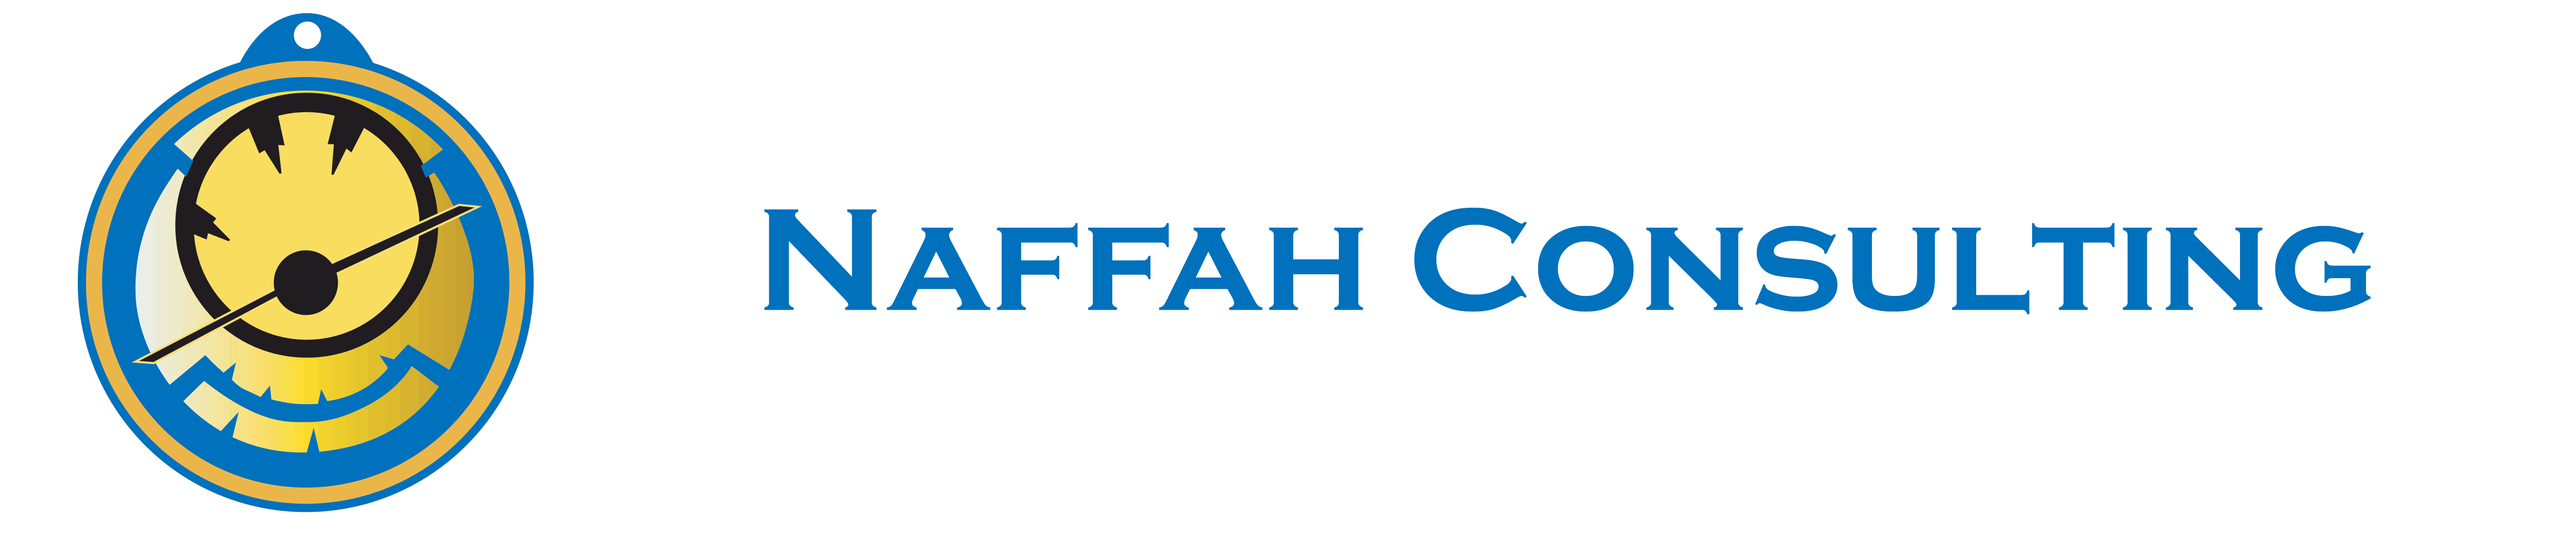 naffahconsulting